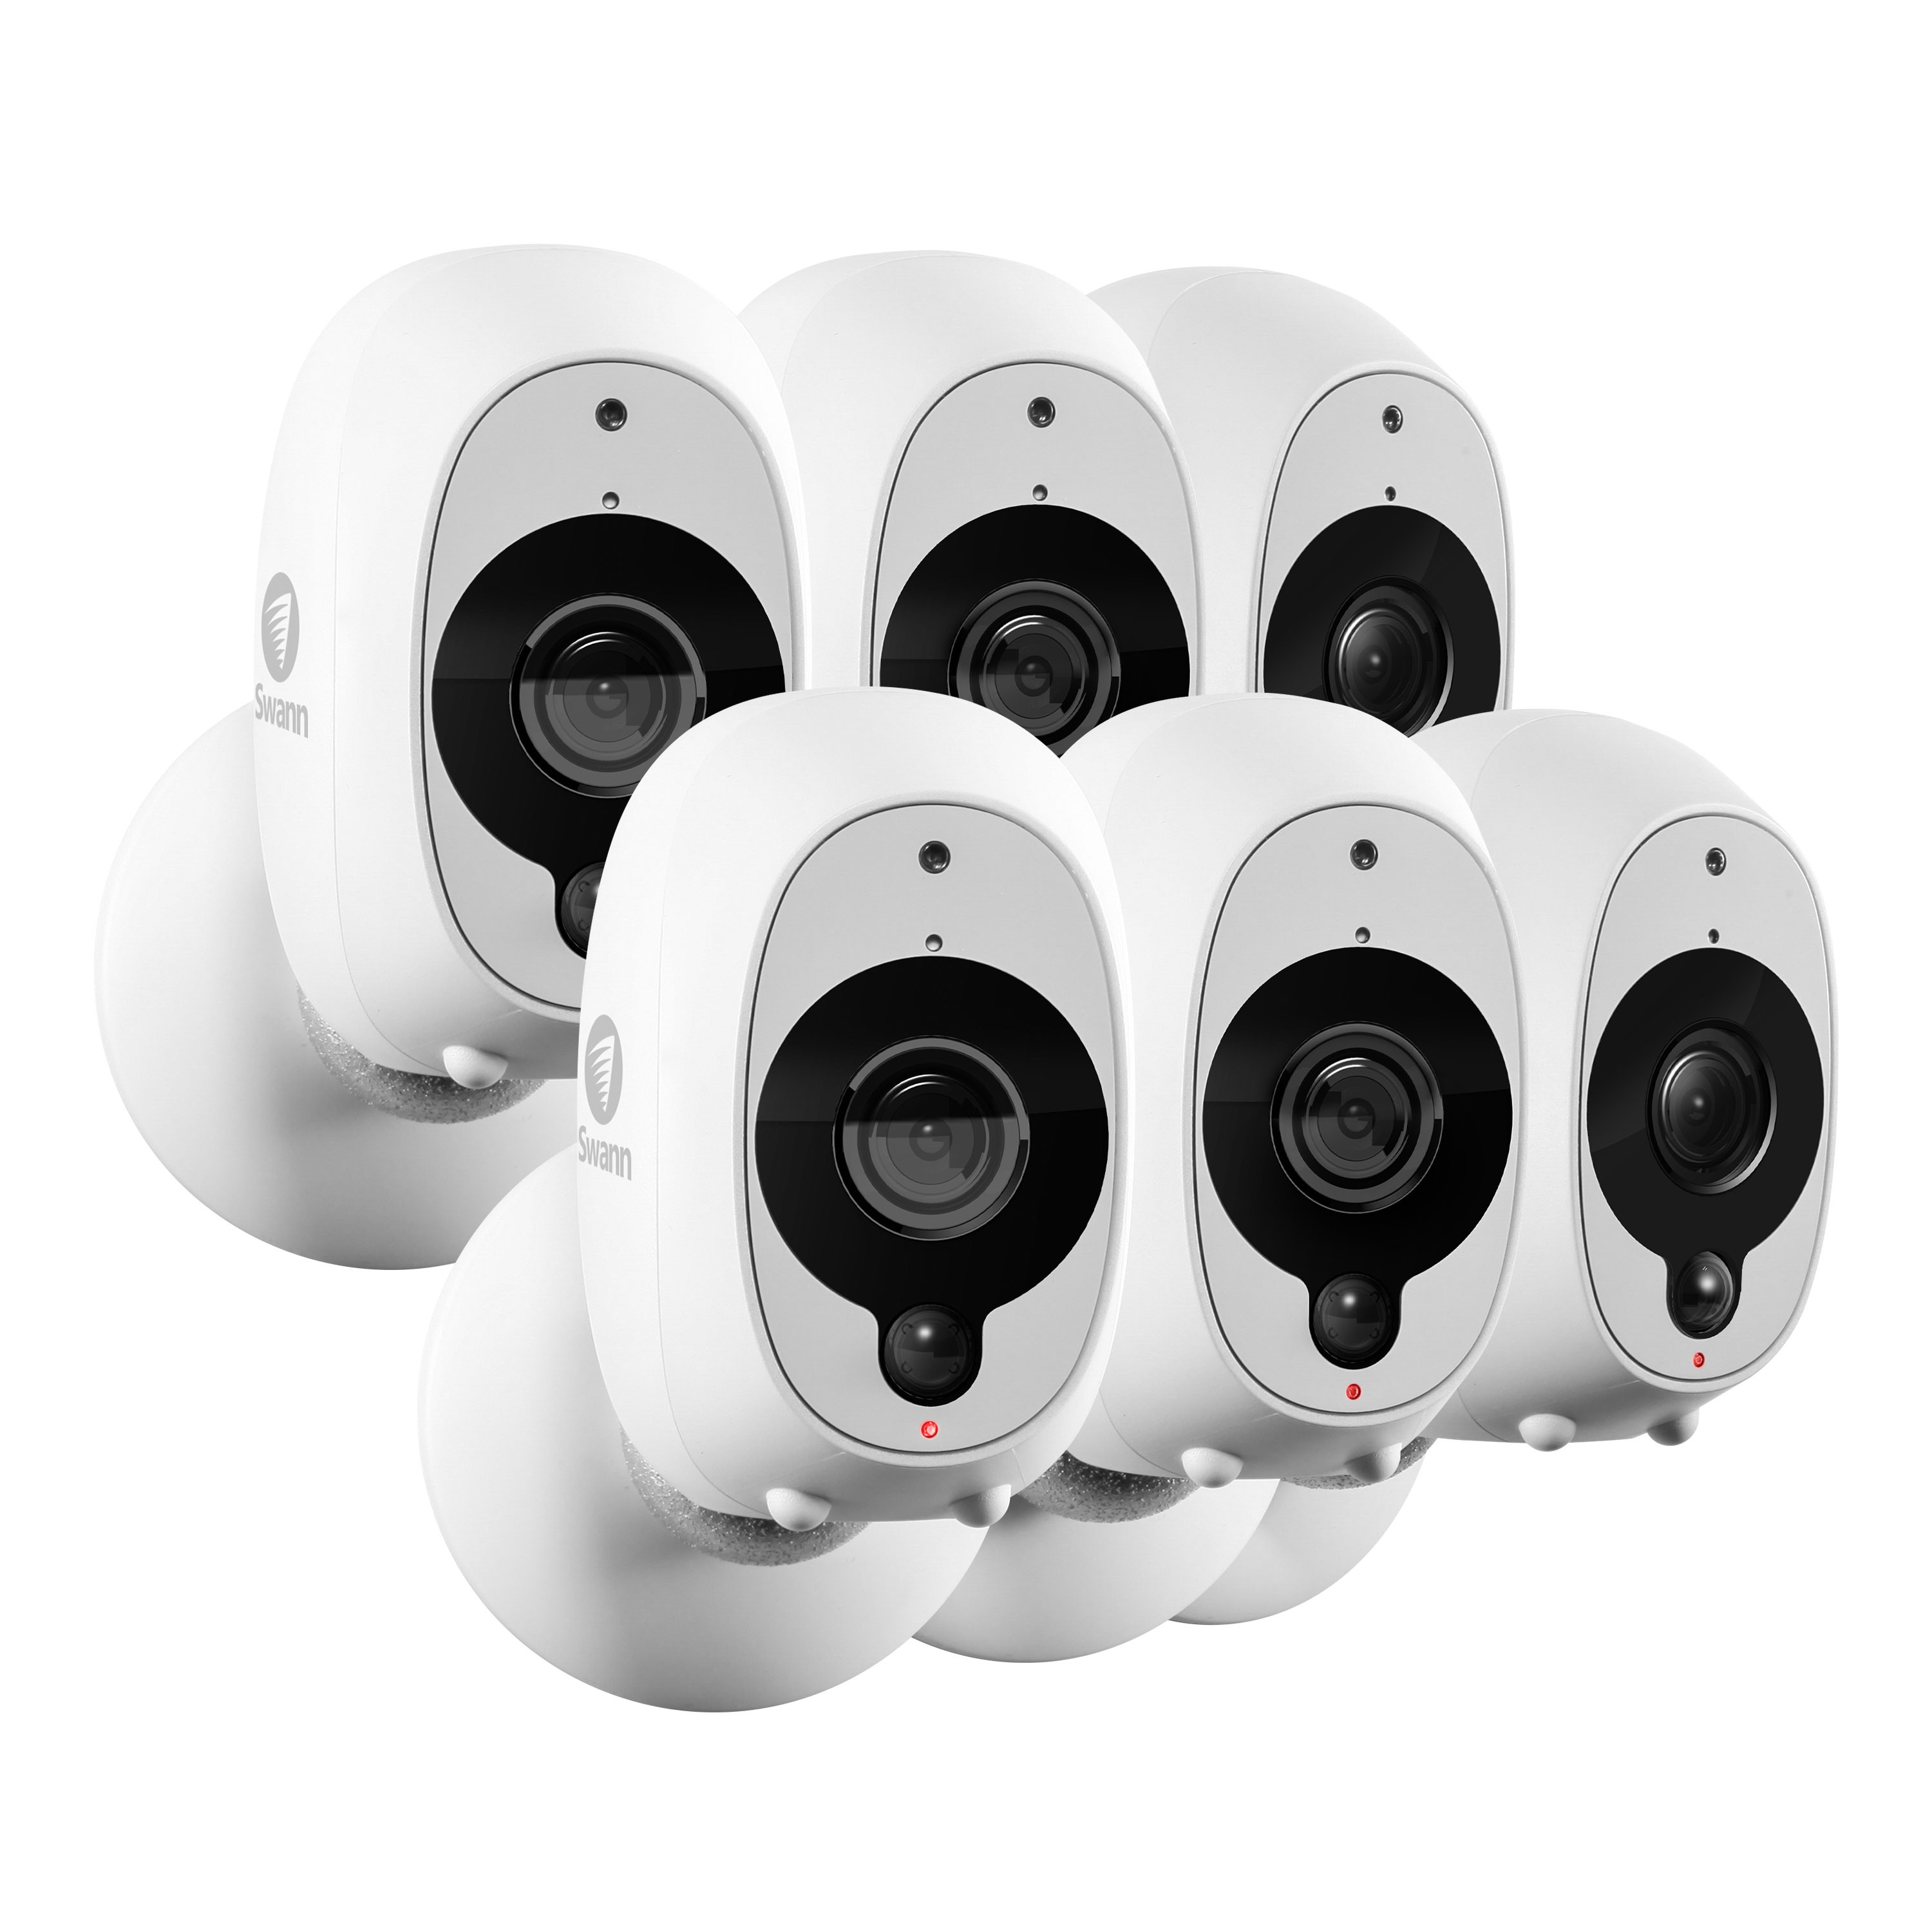 SWWHD-INTCAMPK6 Wire-Free Smart Security Camera 6 Pack Bundle -